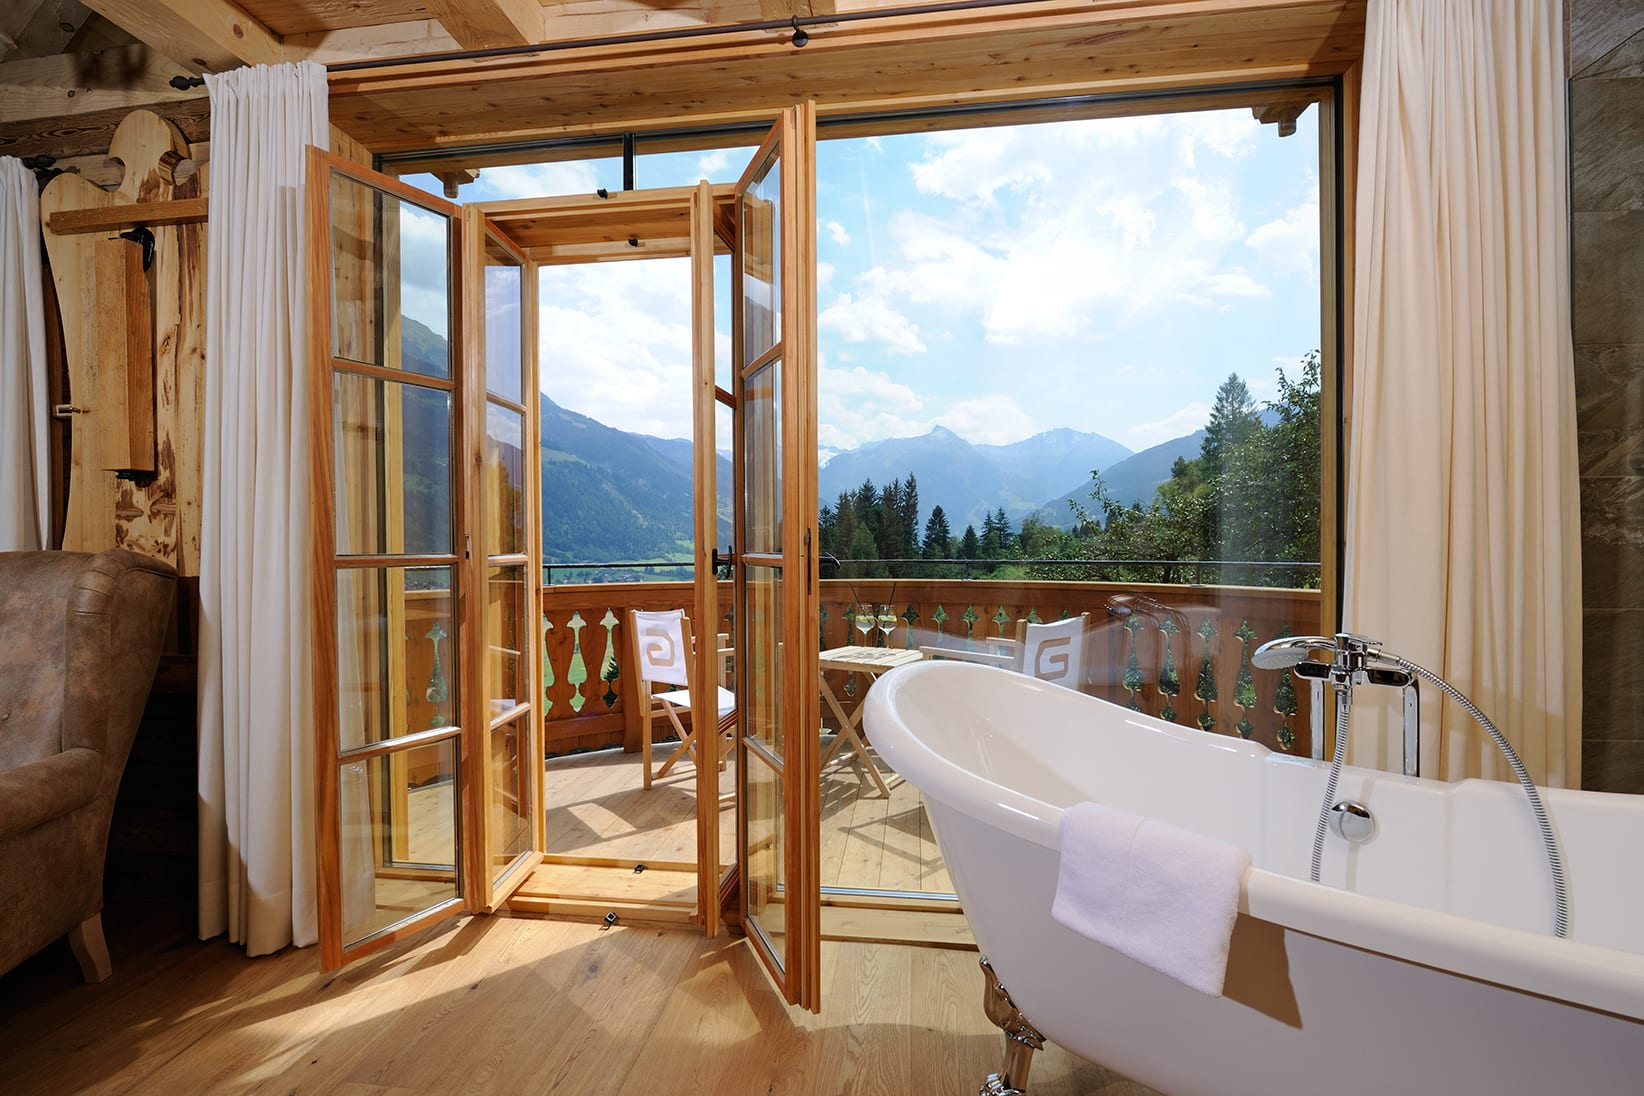 Hotel DAS.GOLDBERG Bad Hofgastein Yoga mit Alexey Gaevskij: Let Go. Be Happy -